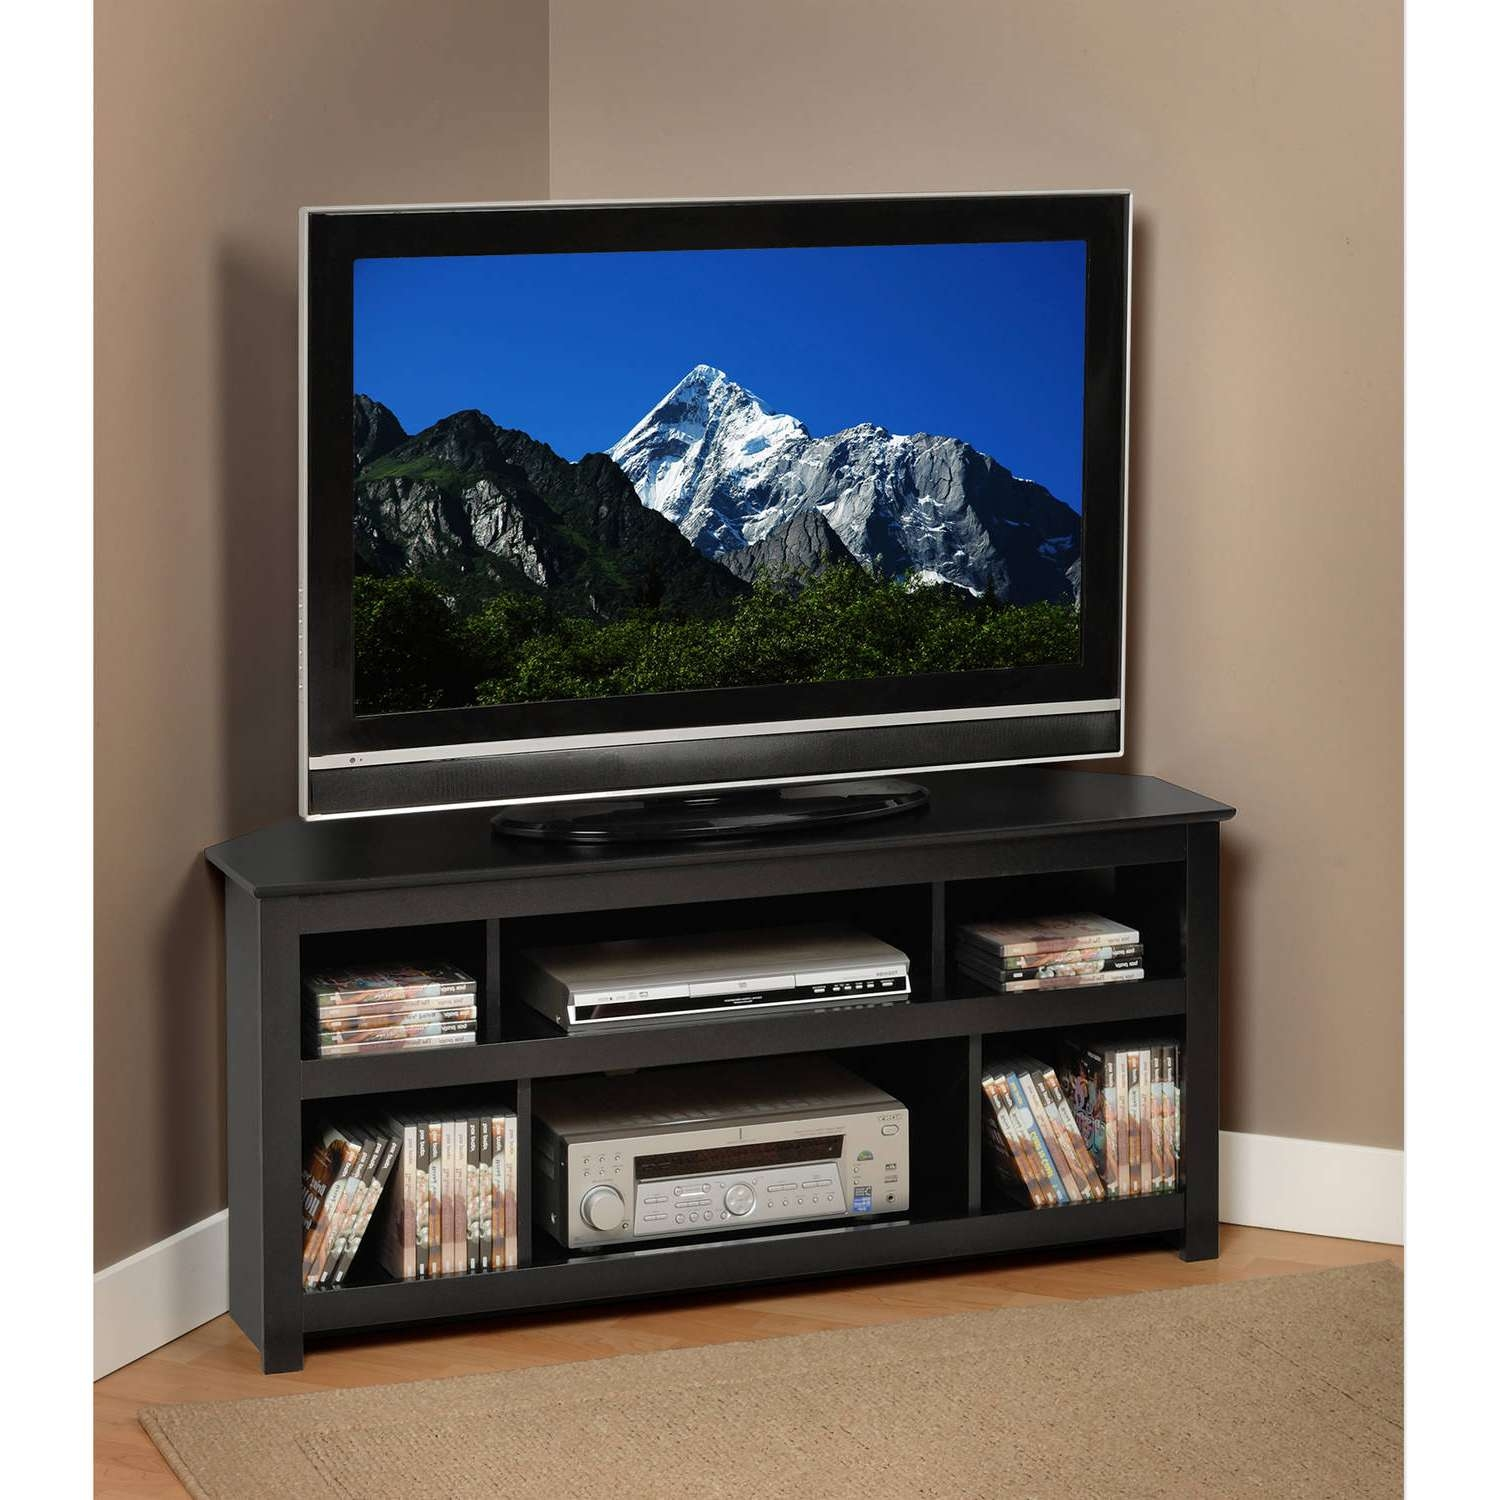 Tv : Amazing Low Corner Tv Stands Leick Home Westwood 46 Corner Tv Regarding Corner Tv Stands For 46 Inch Flat Screen (View 4 of 15)